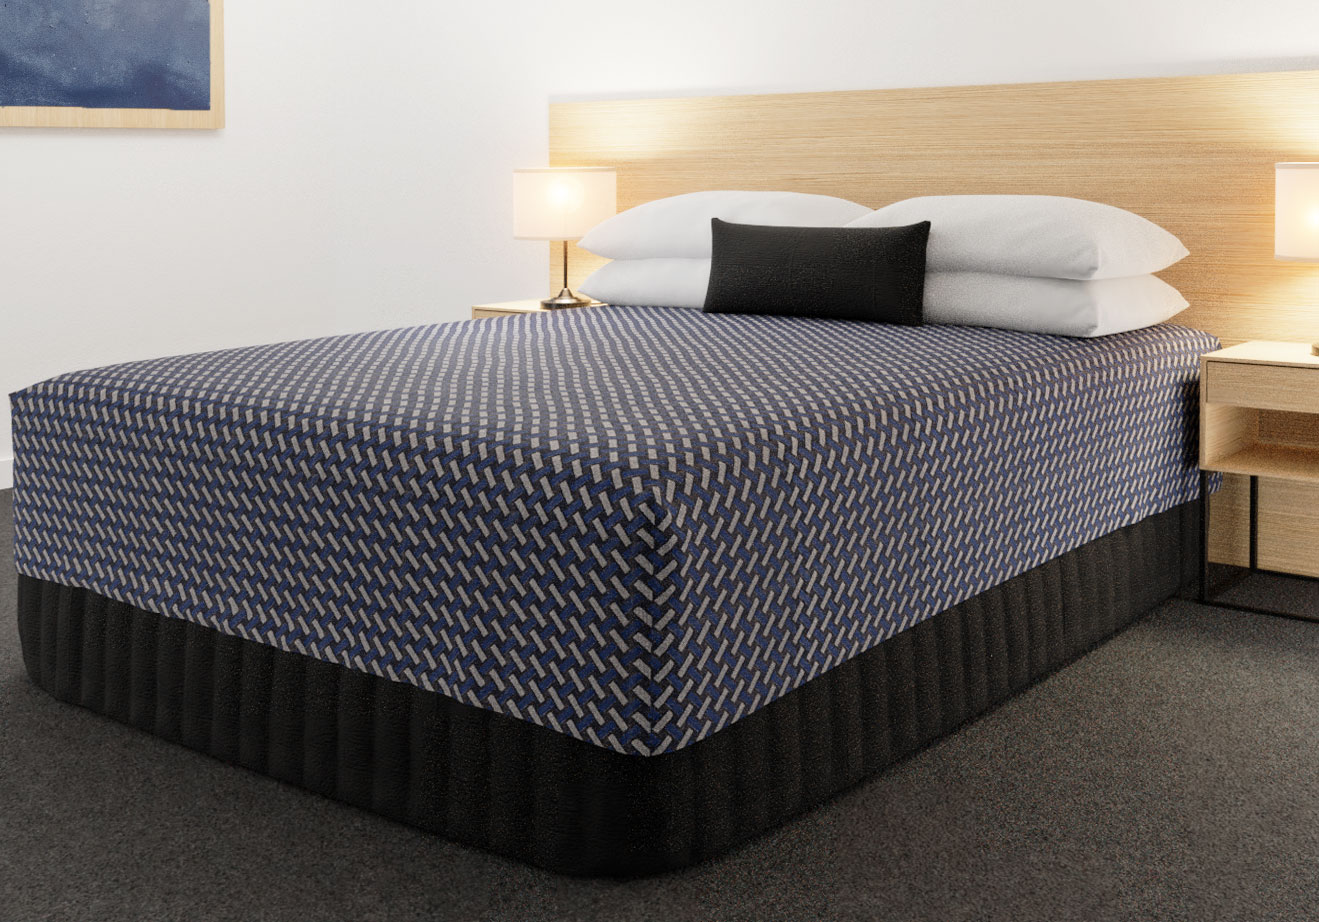 Practical Fitted Bed Cover - Cap Top - Flat Top Style - Basque Indigo with Siam Dark Navy Suite Valance and Breakfast Cushion